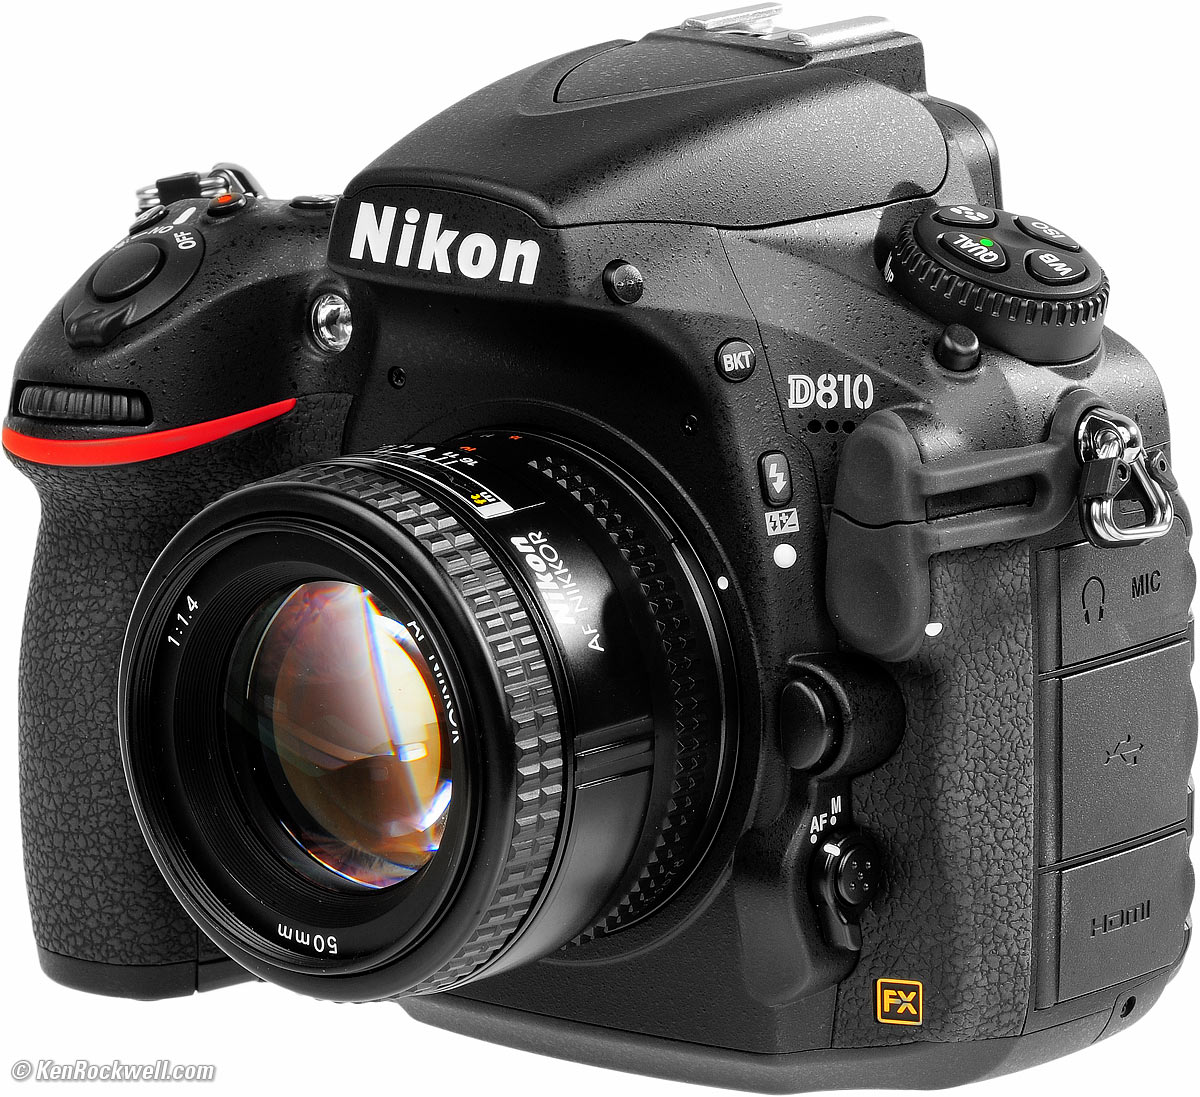 Superior Quality Nikon D810 FX-format Digital SLR Camera- Review